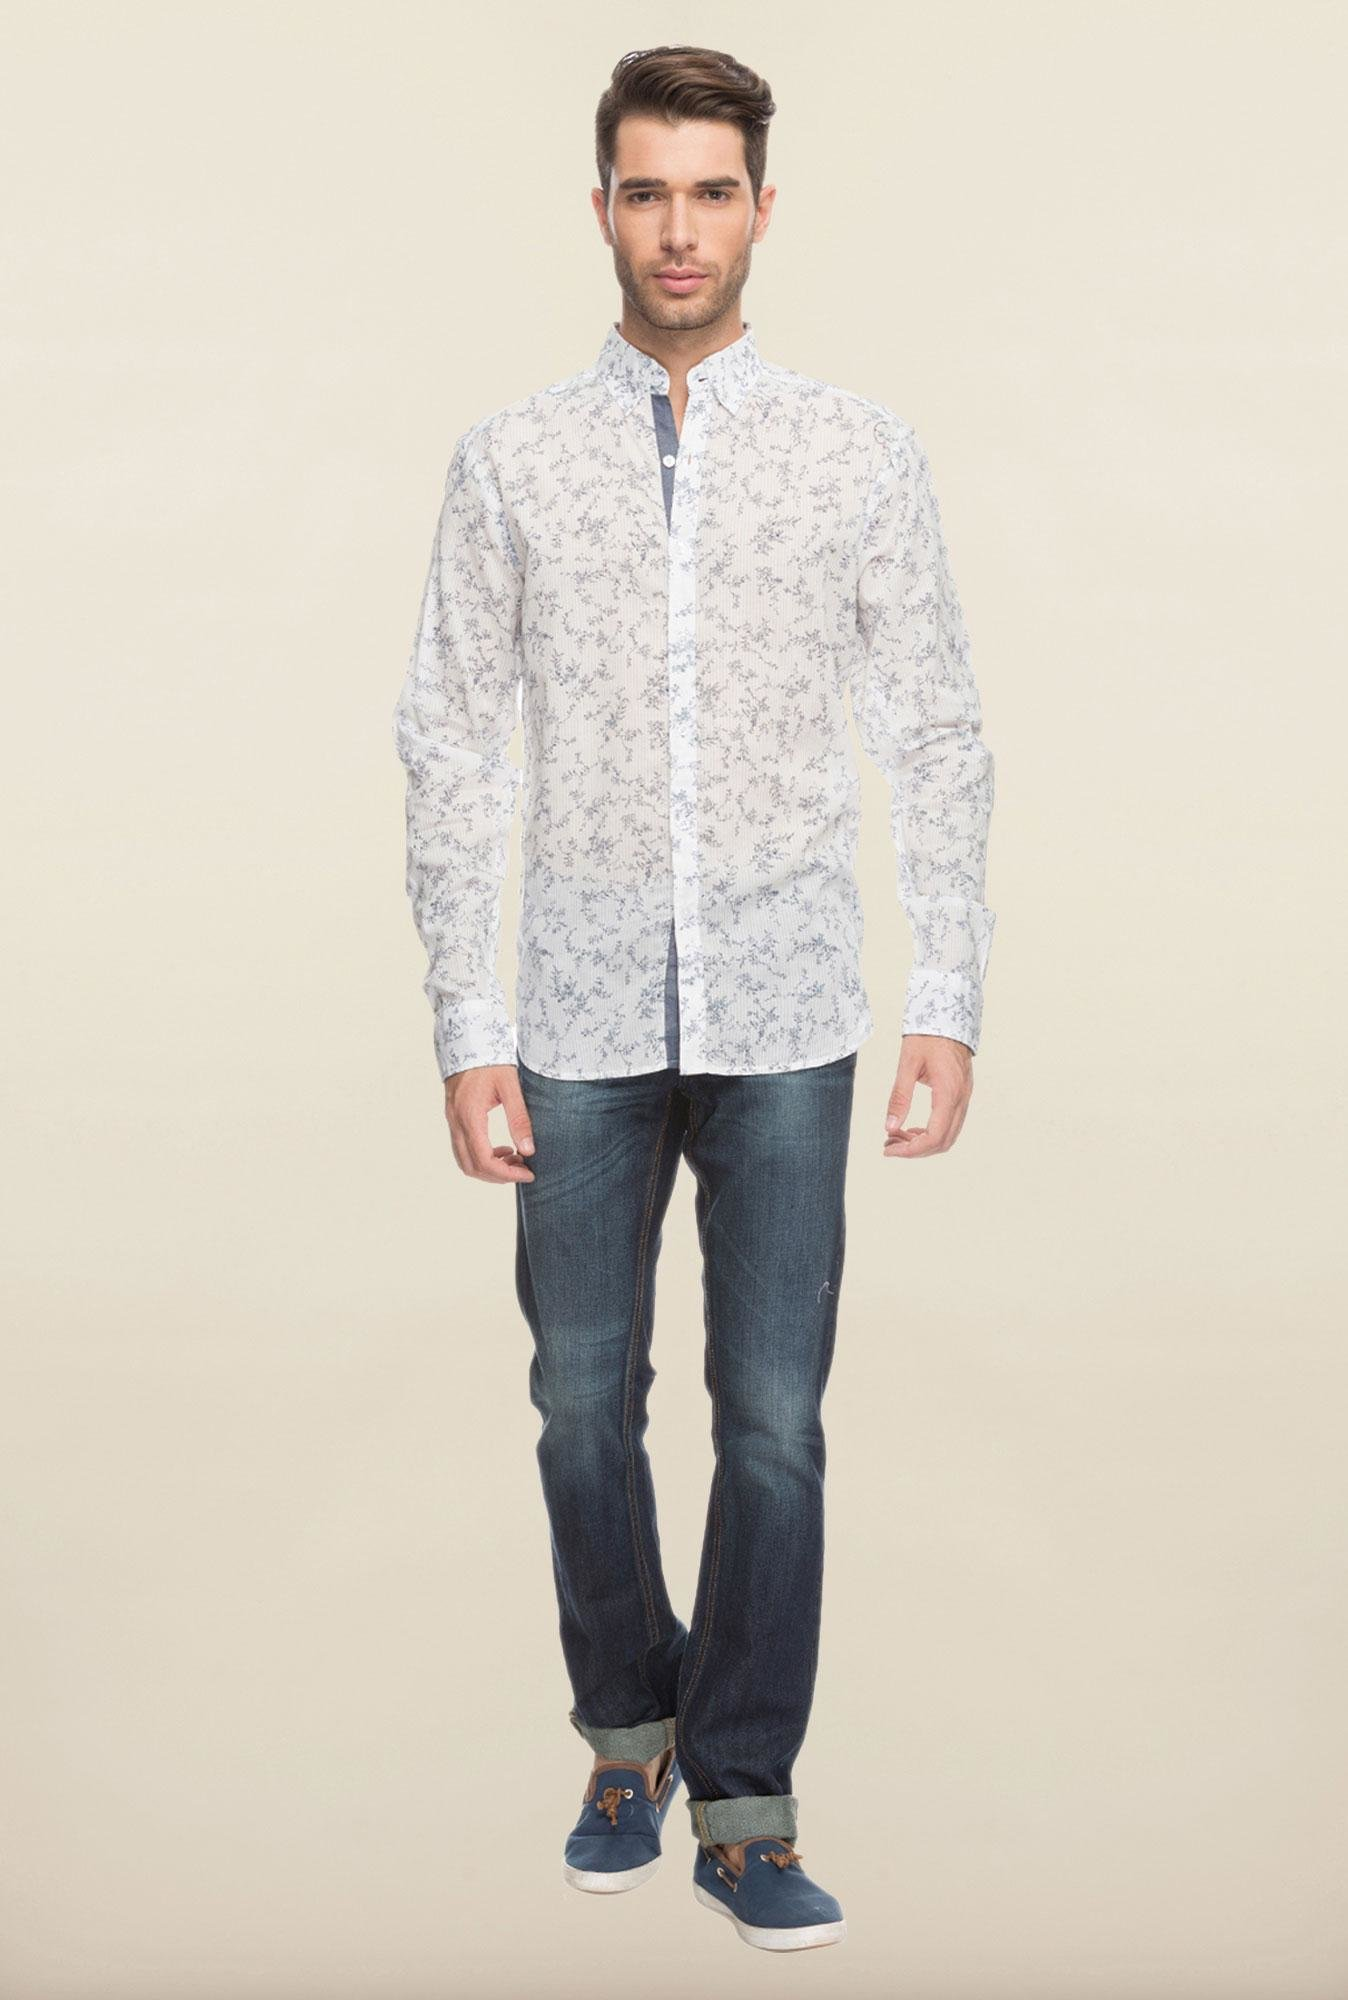 Cottonworld White Printed Shirt